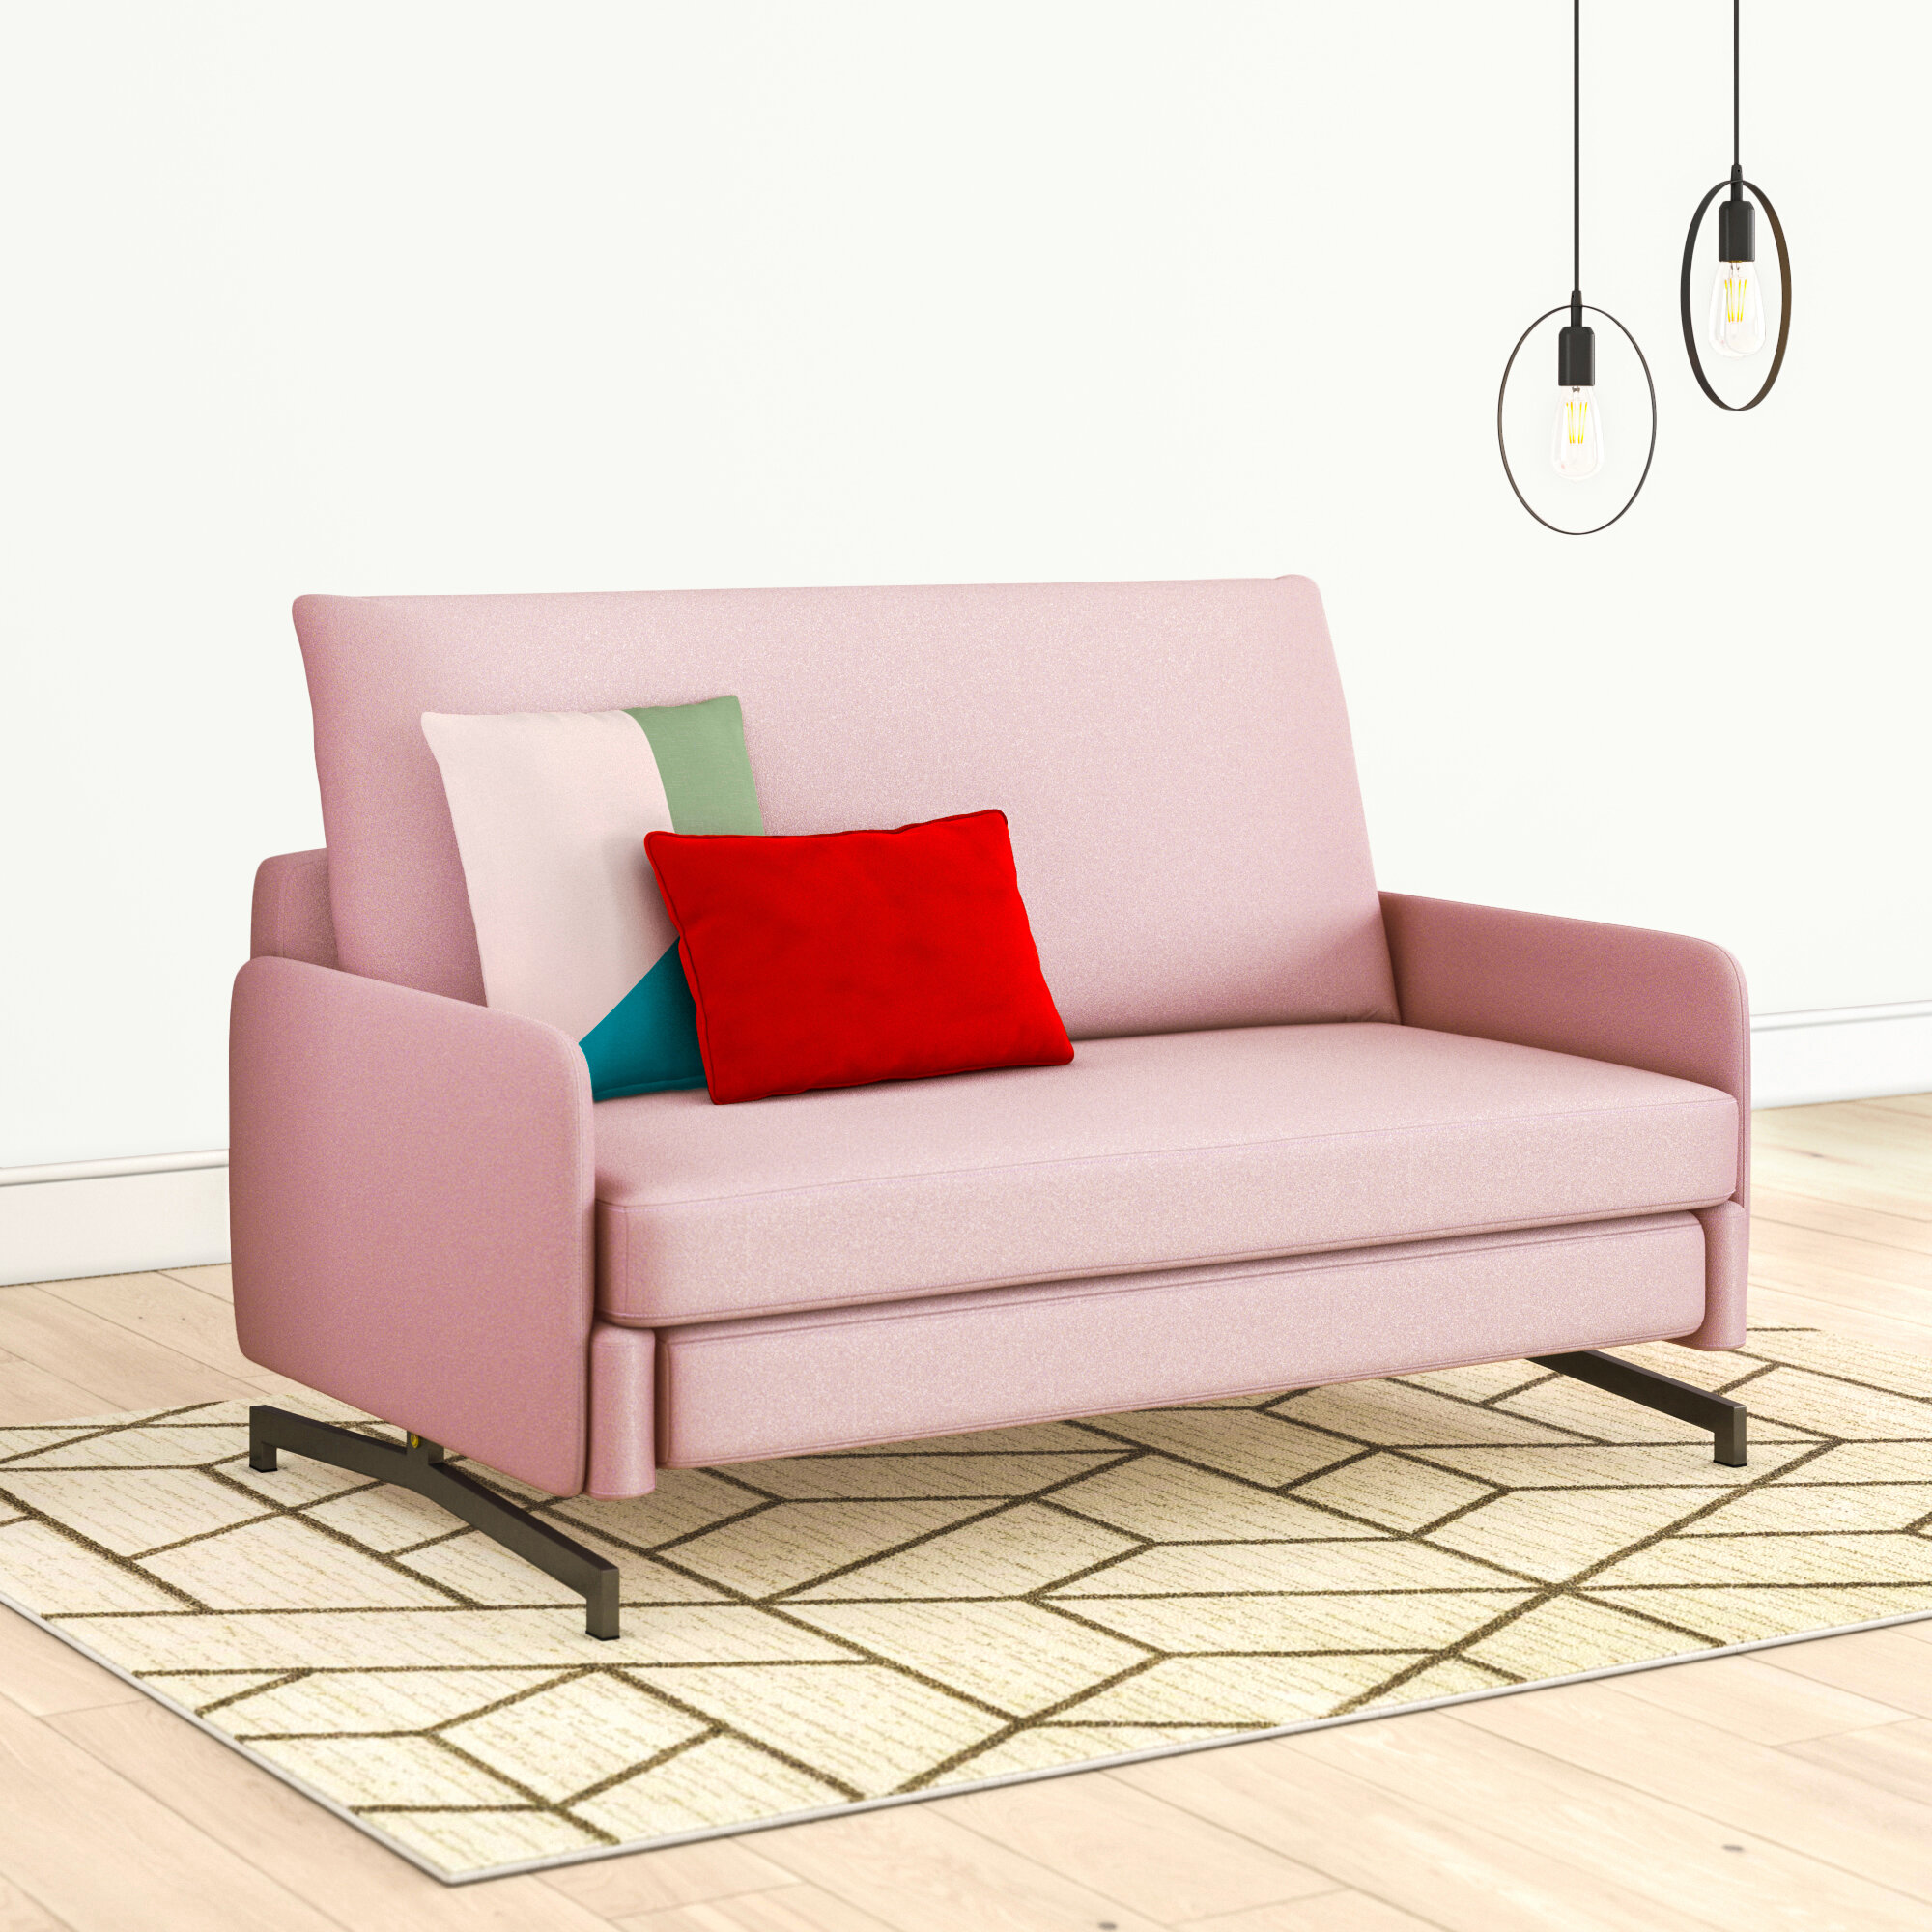 Delano 2 Seater Fold Out Sofa Bed